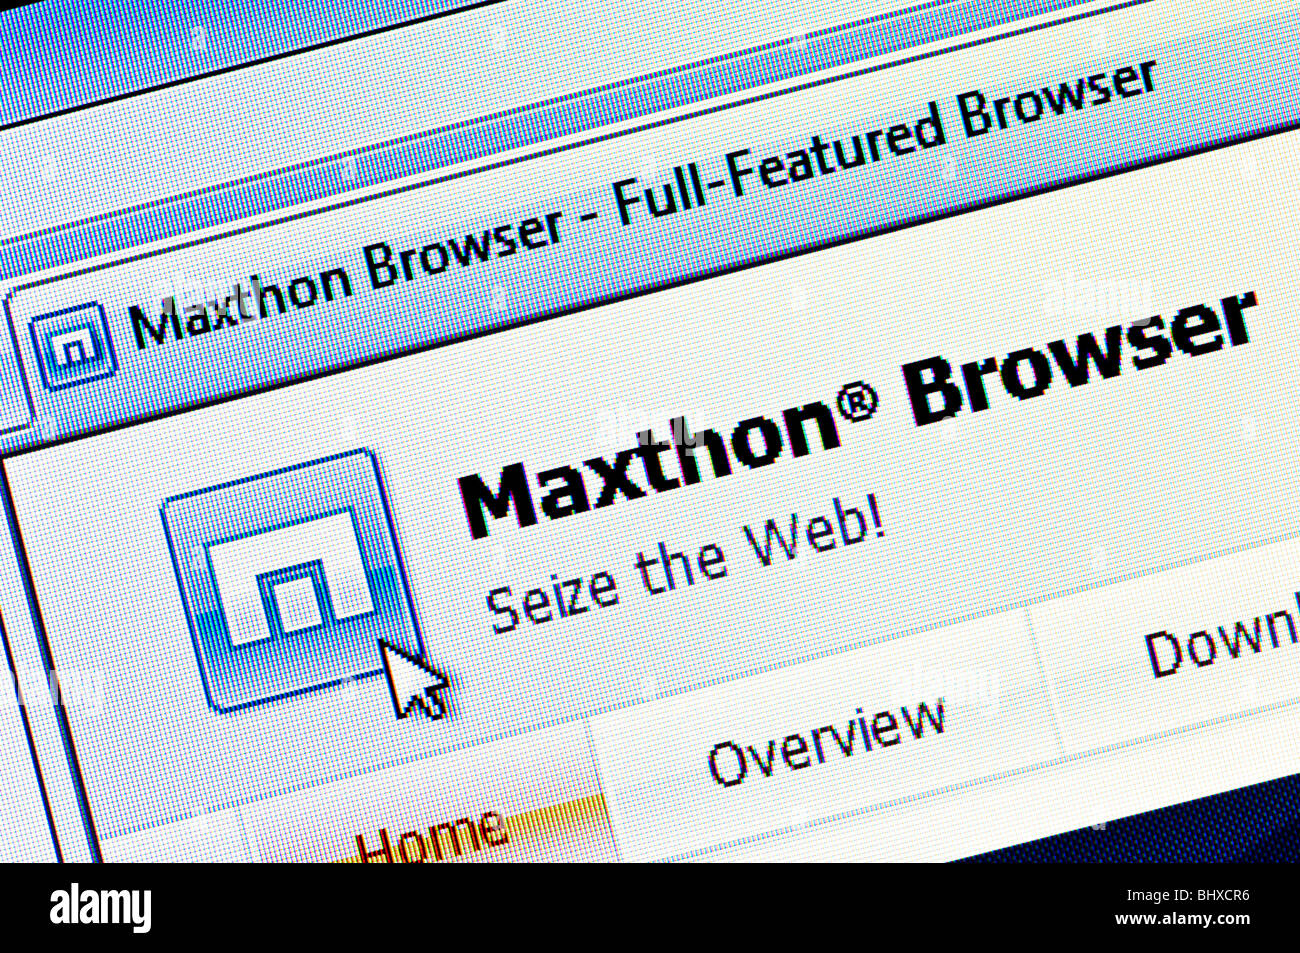 Macro screenshot of the website and logo of Maxthon - the China based freeware web browser for Windows. Editorial - Stock Image